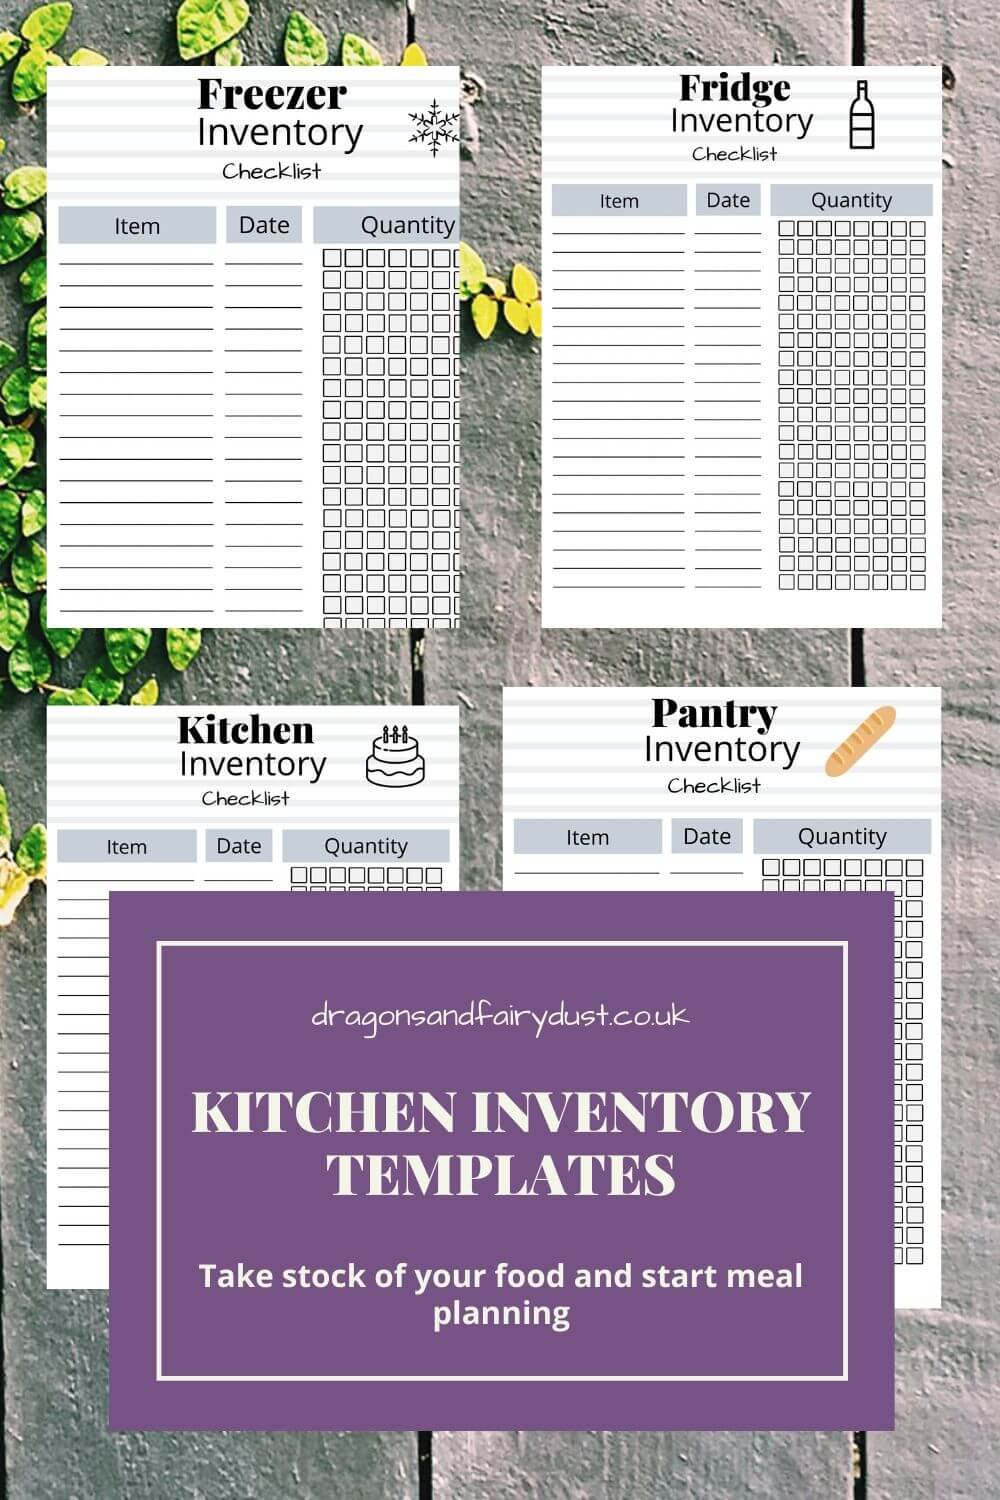 Kitchen Inventory Templates to print out